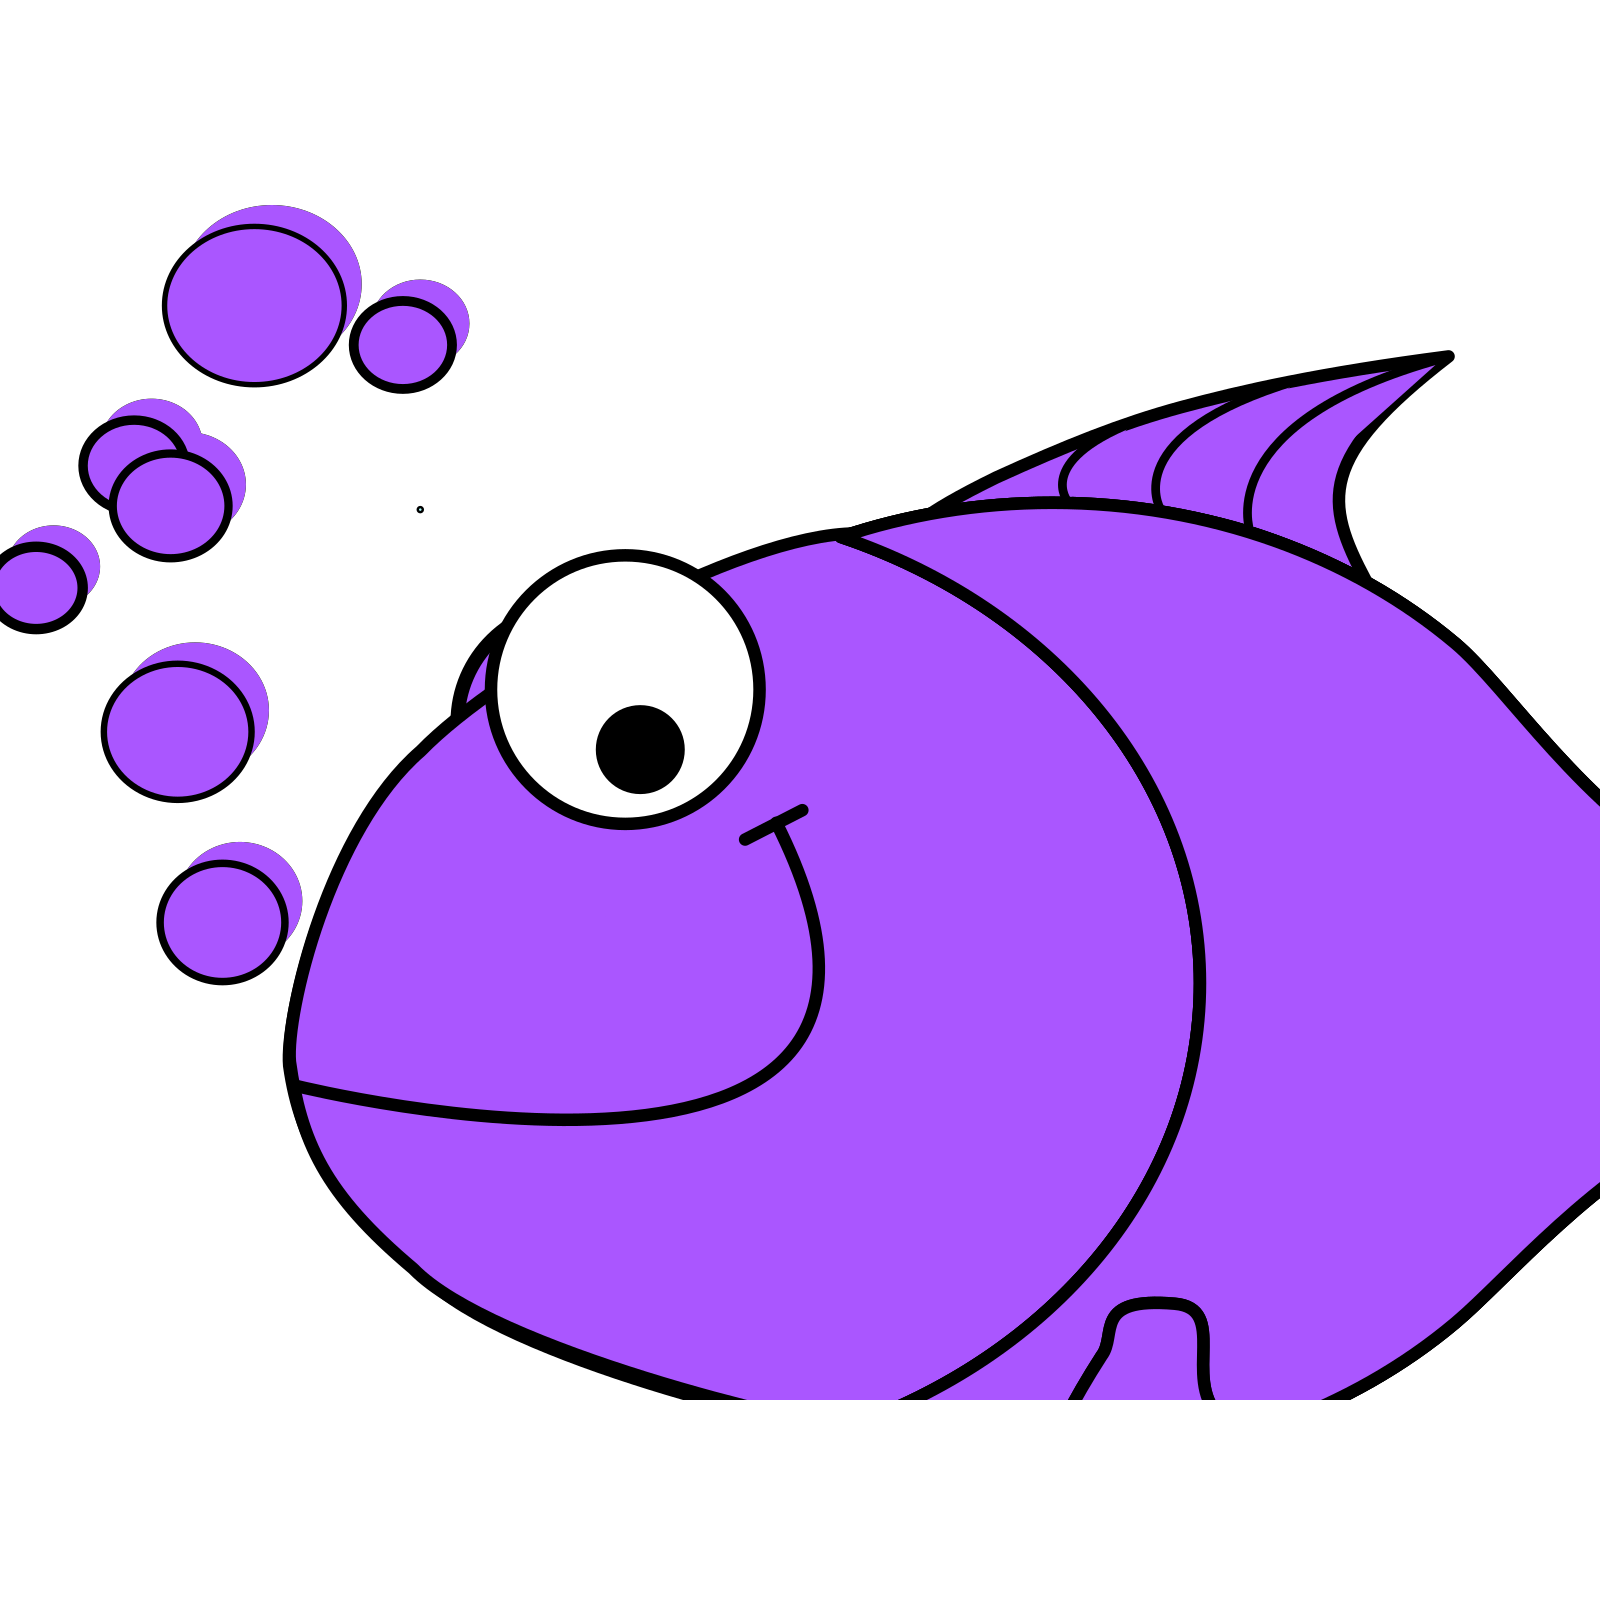 Purple Fish SVG Vector, Purple Fish Clip art - SVG Clipart